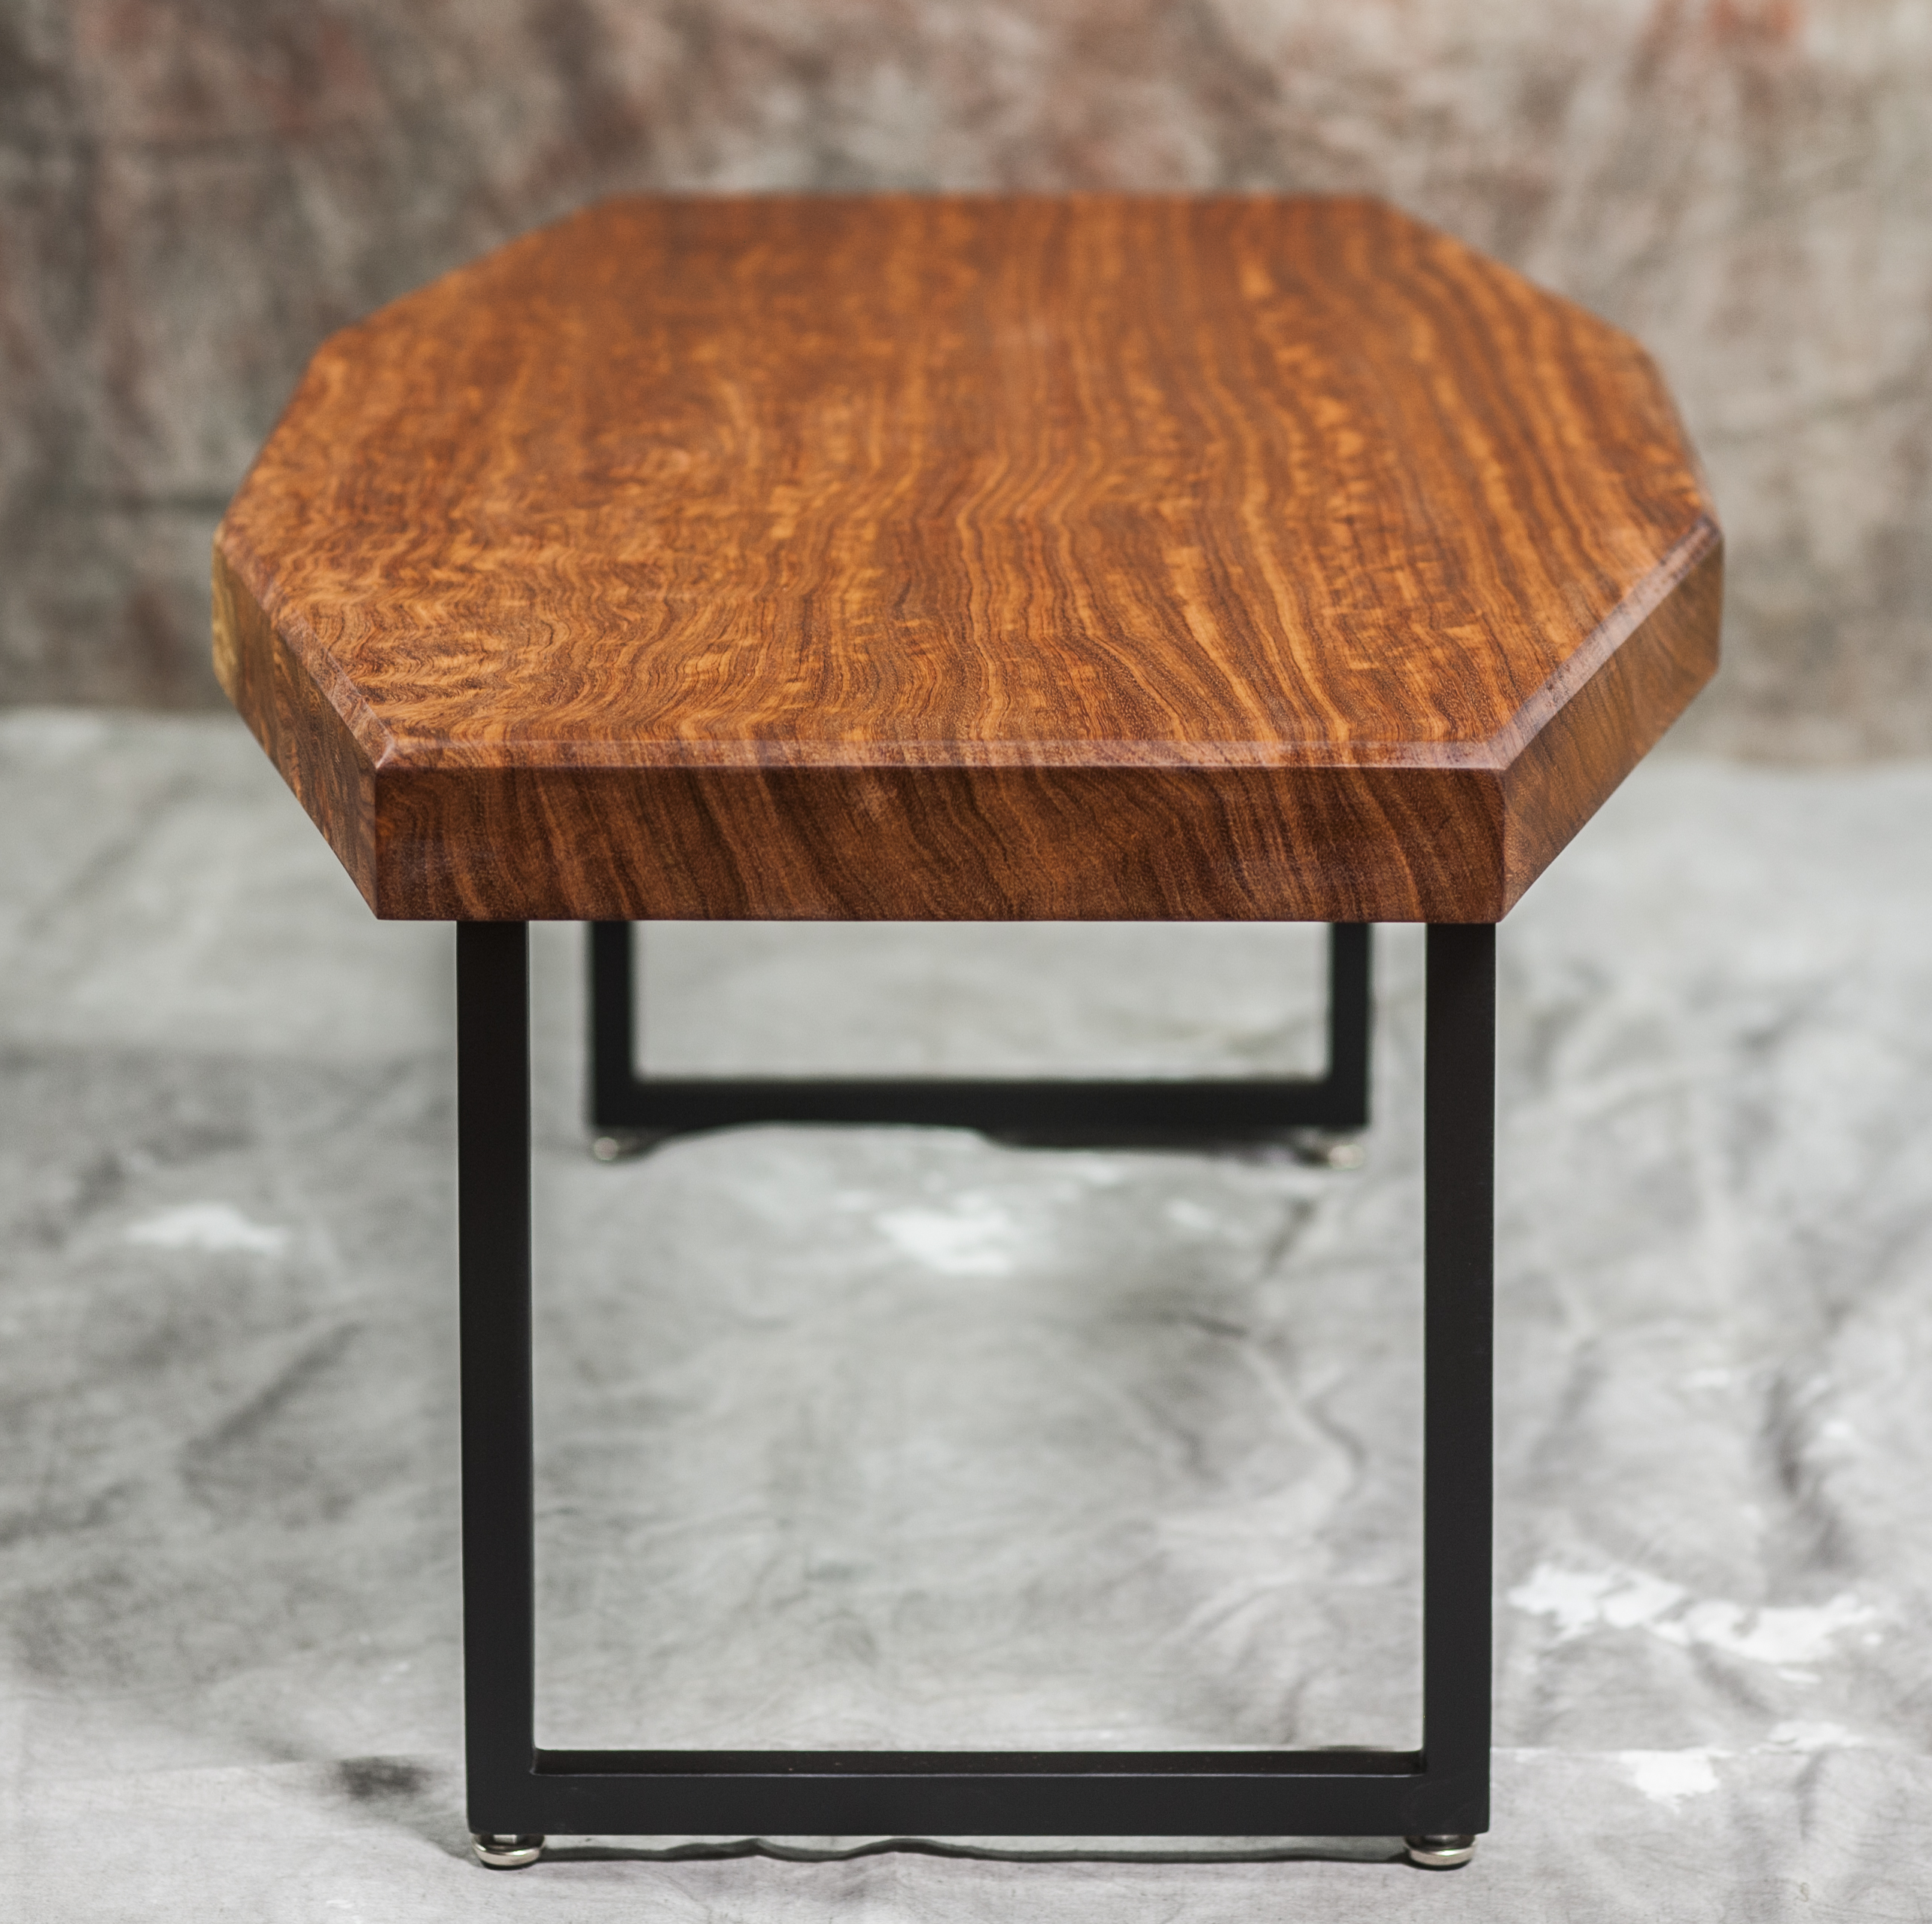 Bubinga Fire Table With Steel Legs - Artumwood